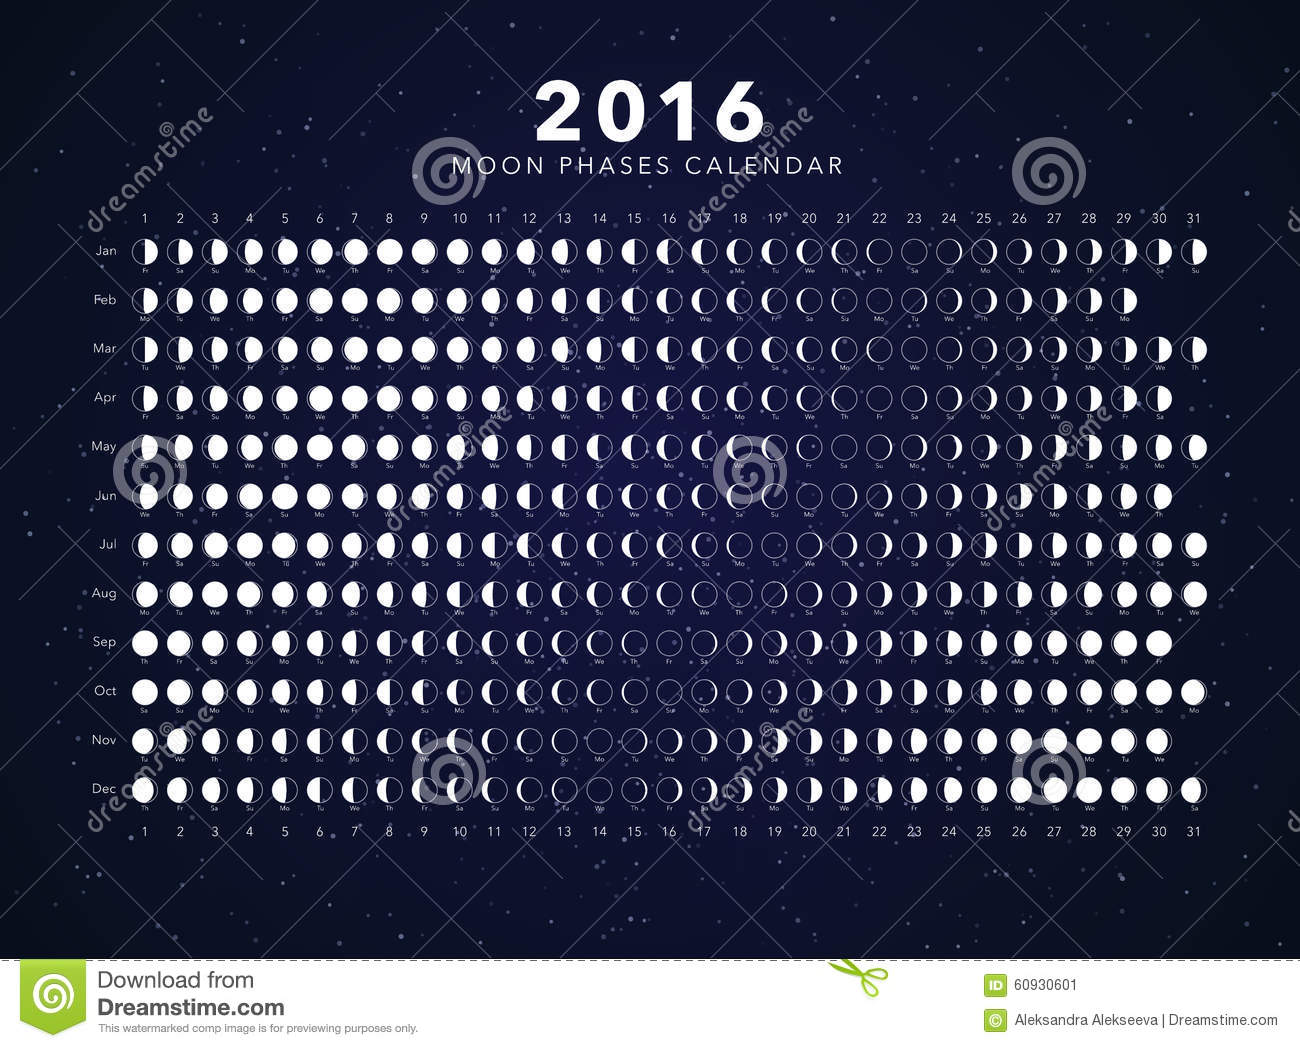 Search Results For Moonphases December Calendar